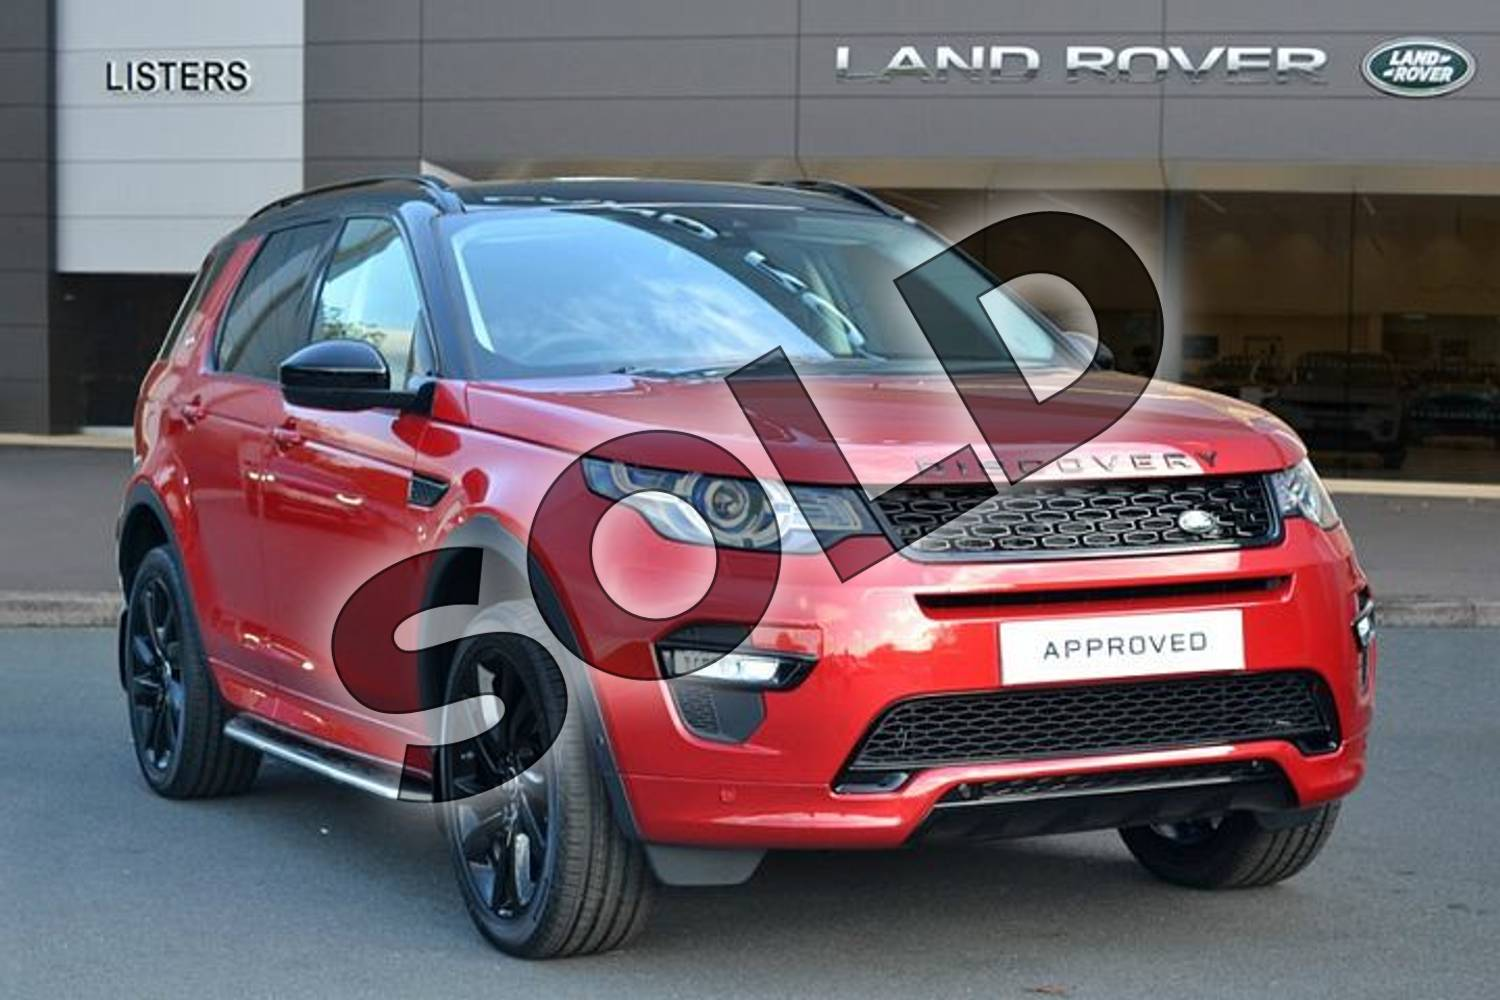 2019 Land Rover Discovery Sport Diesel SW 2.0 TD4 180 HSE Luxury 5dr Auto (5 Seat) in Firenze Red at Listers Land Rover Hereford